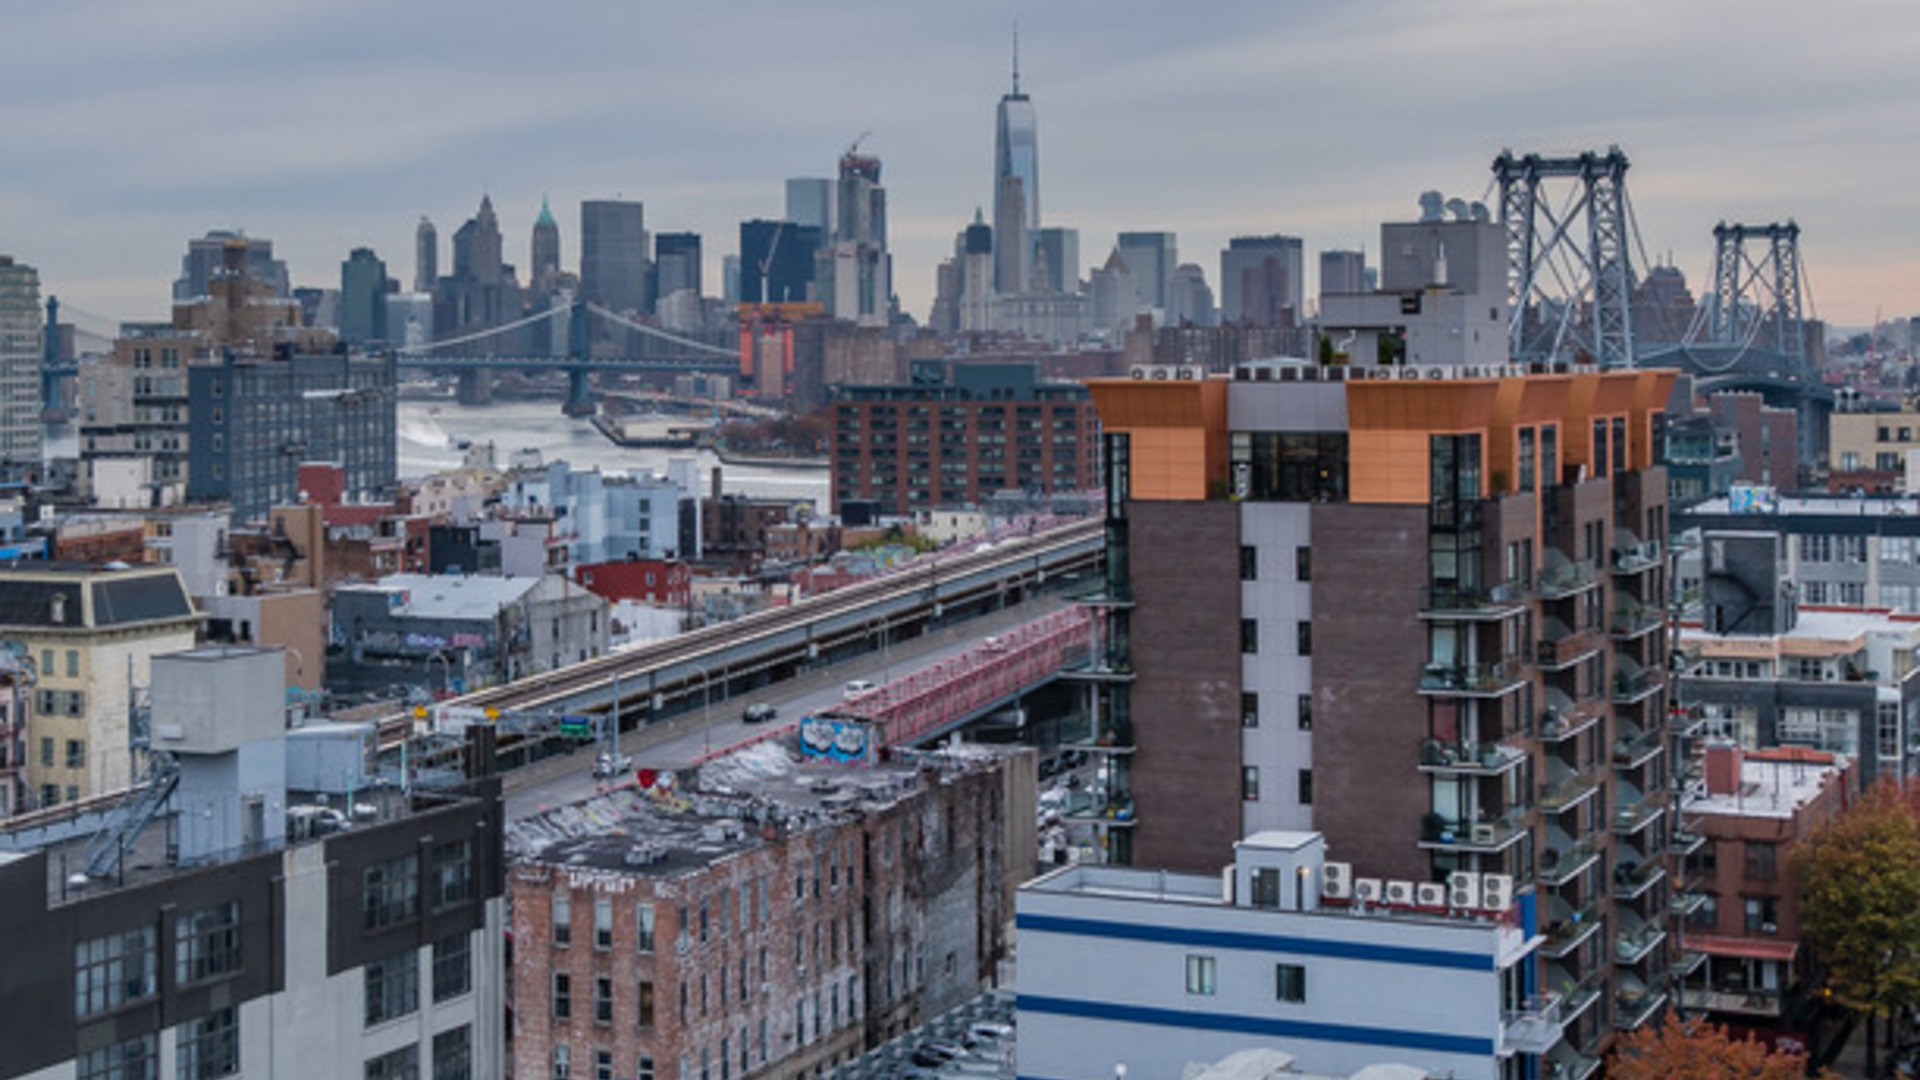 185 s 4th street rooftop 1